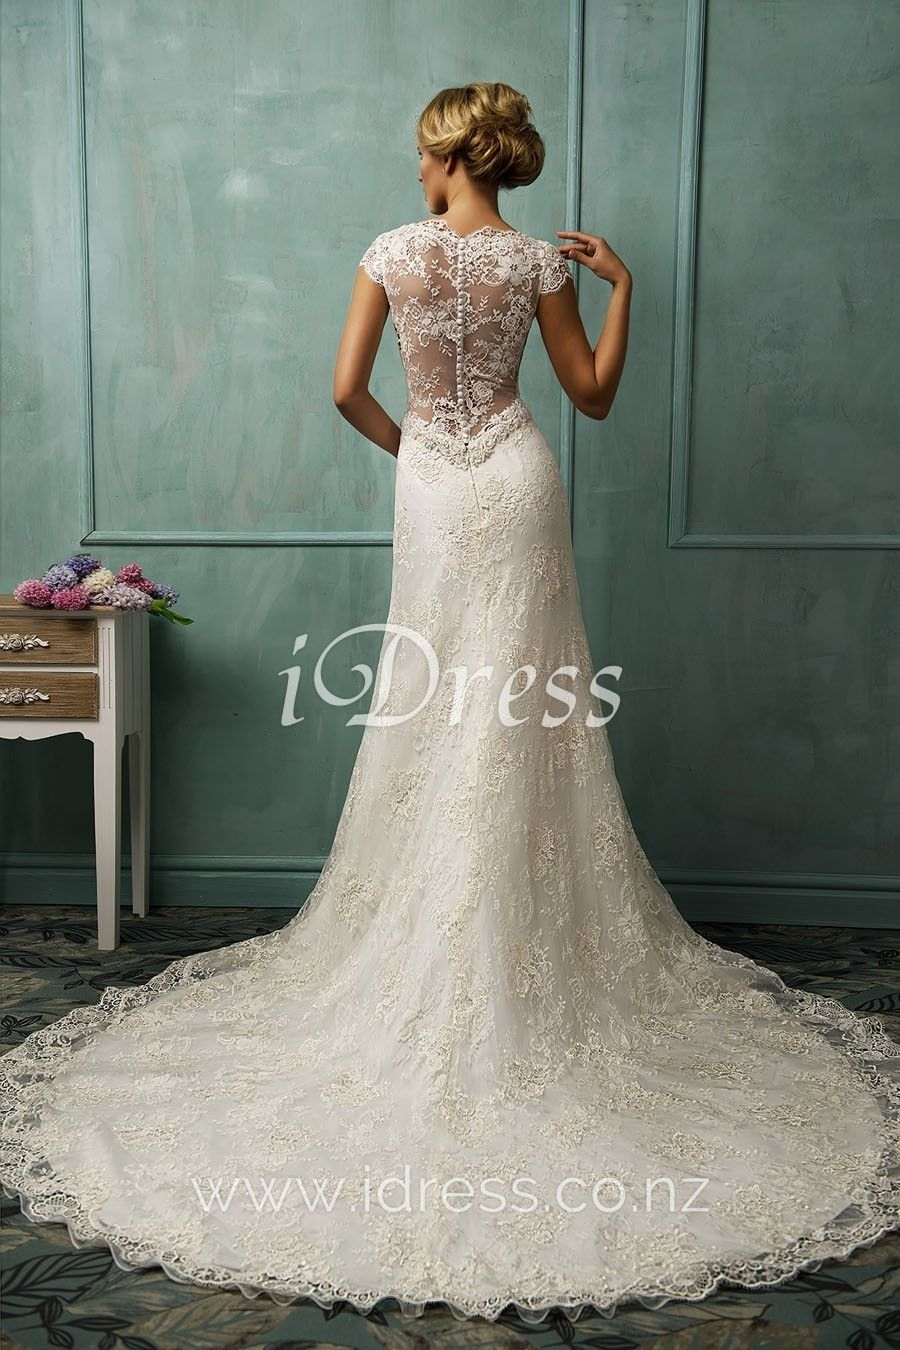 Scalloped Ivory Lace Illusion Mermaid Wedding Dress Amelia Sposa Wedding Dress Wedding Dresses 2014 Used Wedding Dresses